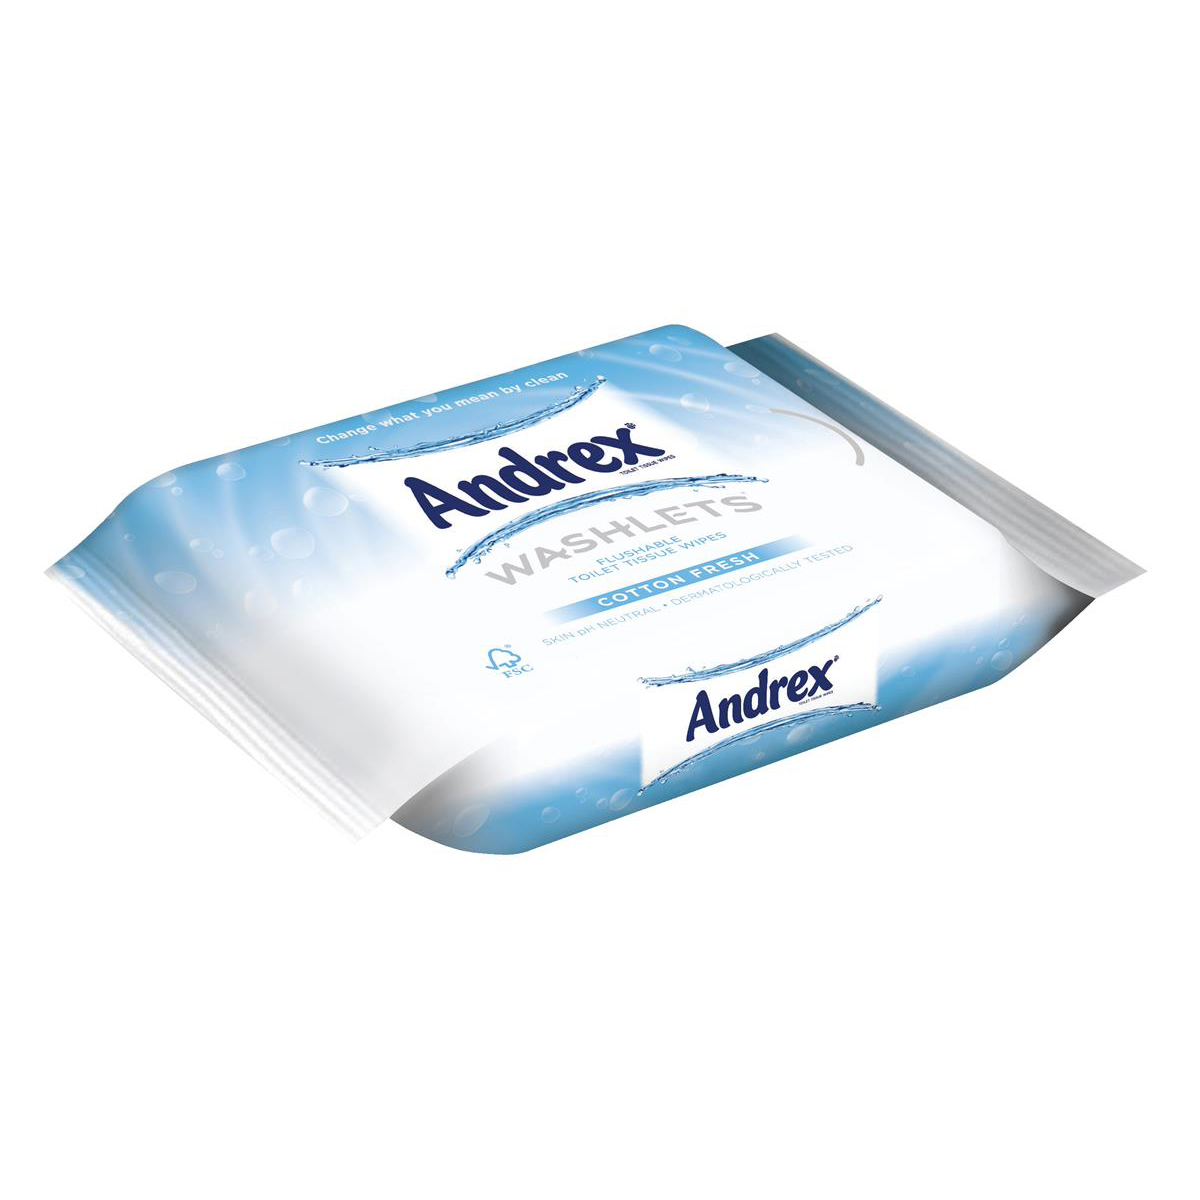 Andrex Toilet Tissue Moist Washlets Flushable 42 Sheets Ref M01384